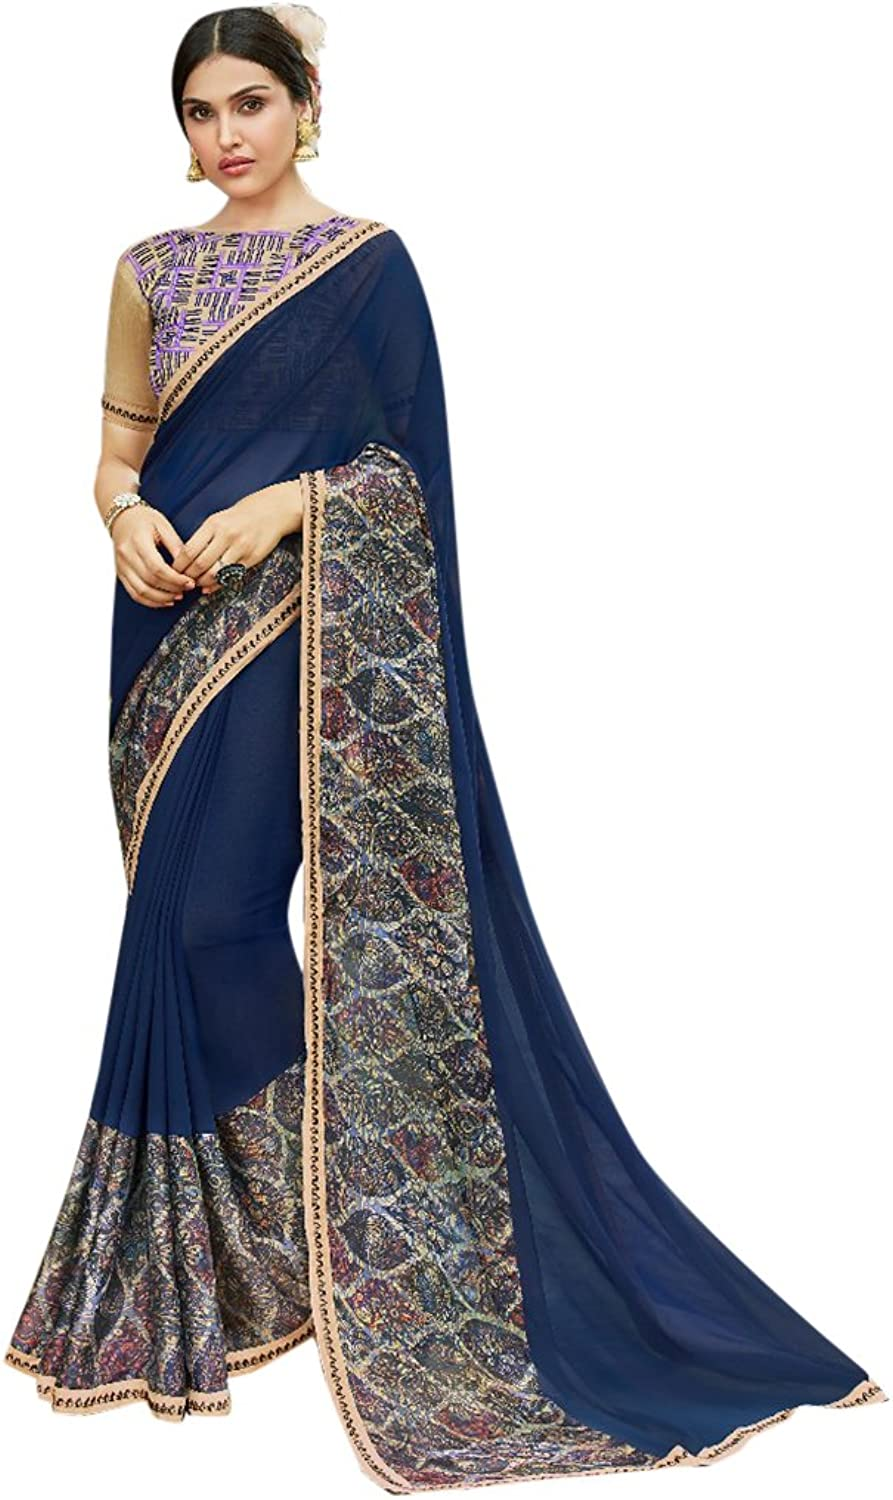 Designer Bollywood Formal Wear Saree Sari for Women Latest Indian Ethnic Wedding Collection Blouse Party Wear Festive Ceremony 2620 10